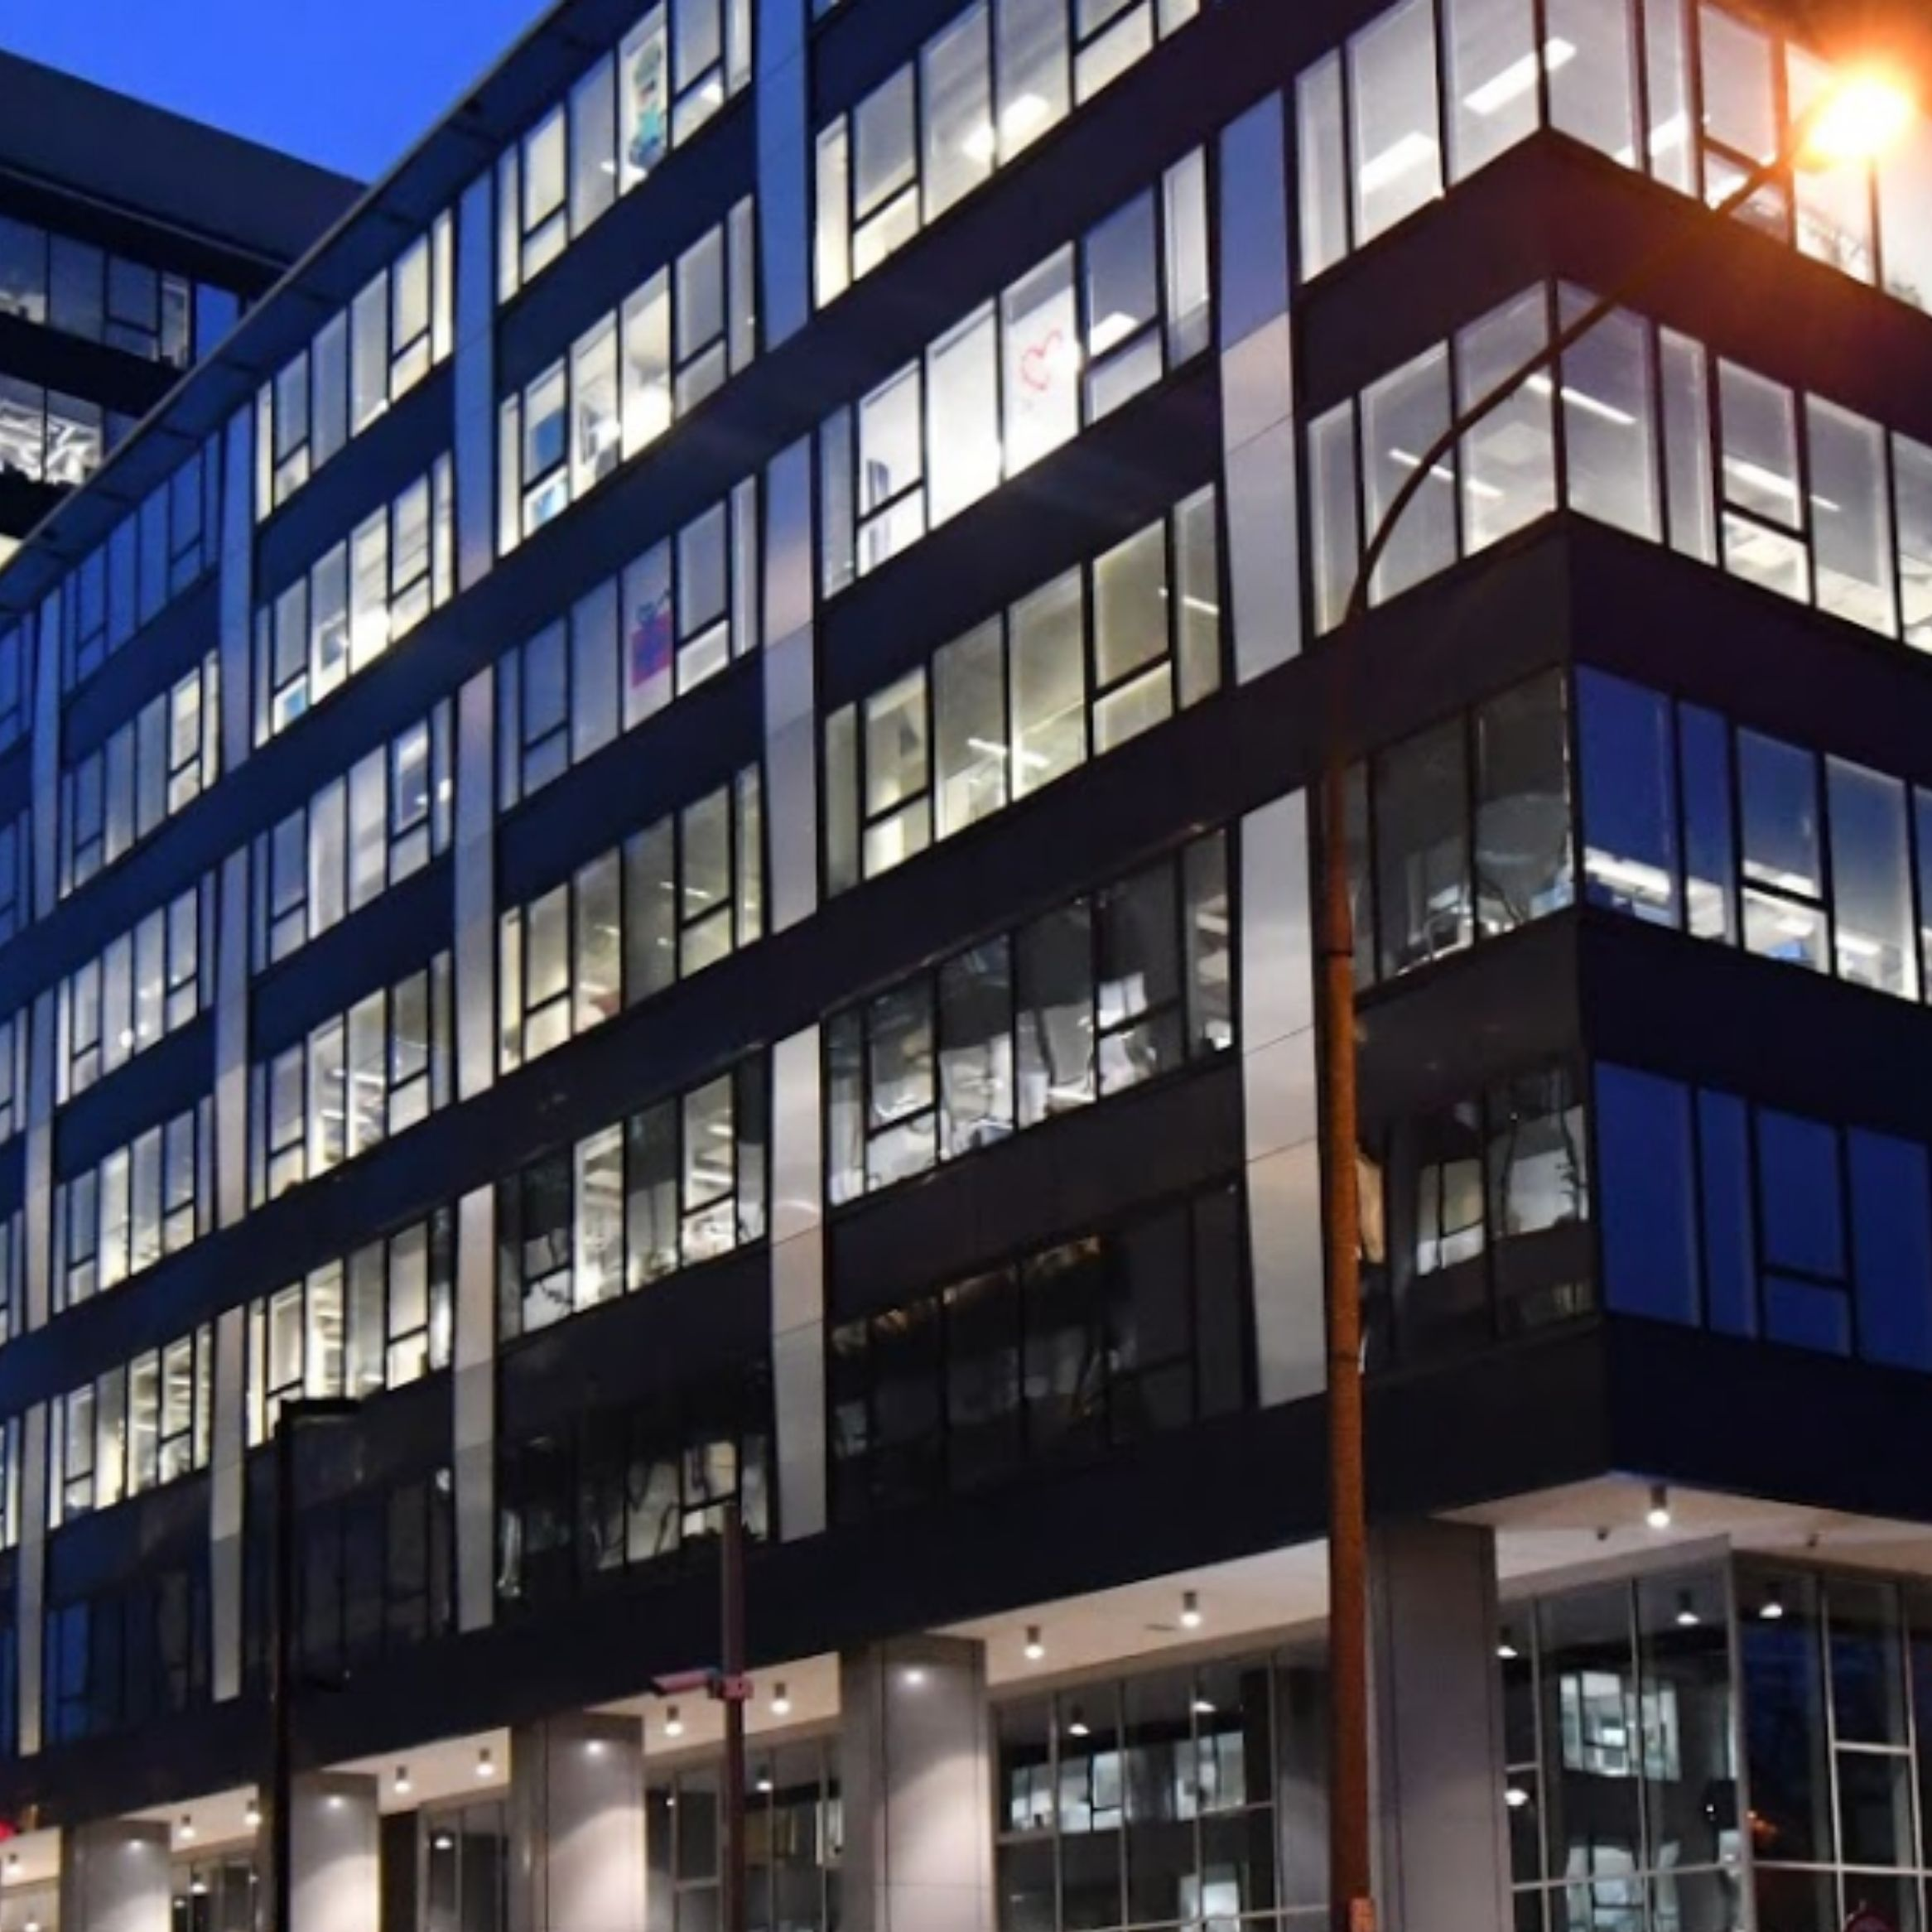 Wołoska 24 office building has a new owner. TPA Poland and Baker Tilly TPA advised on the transaction